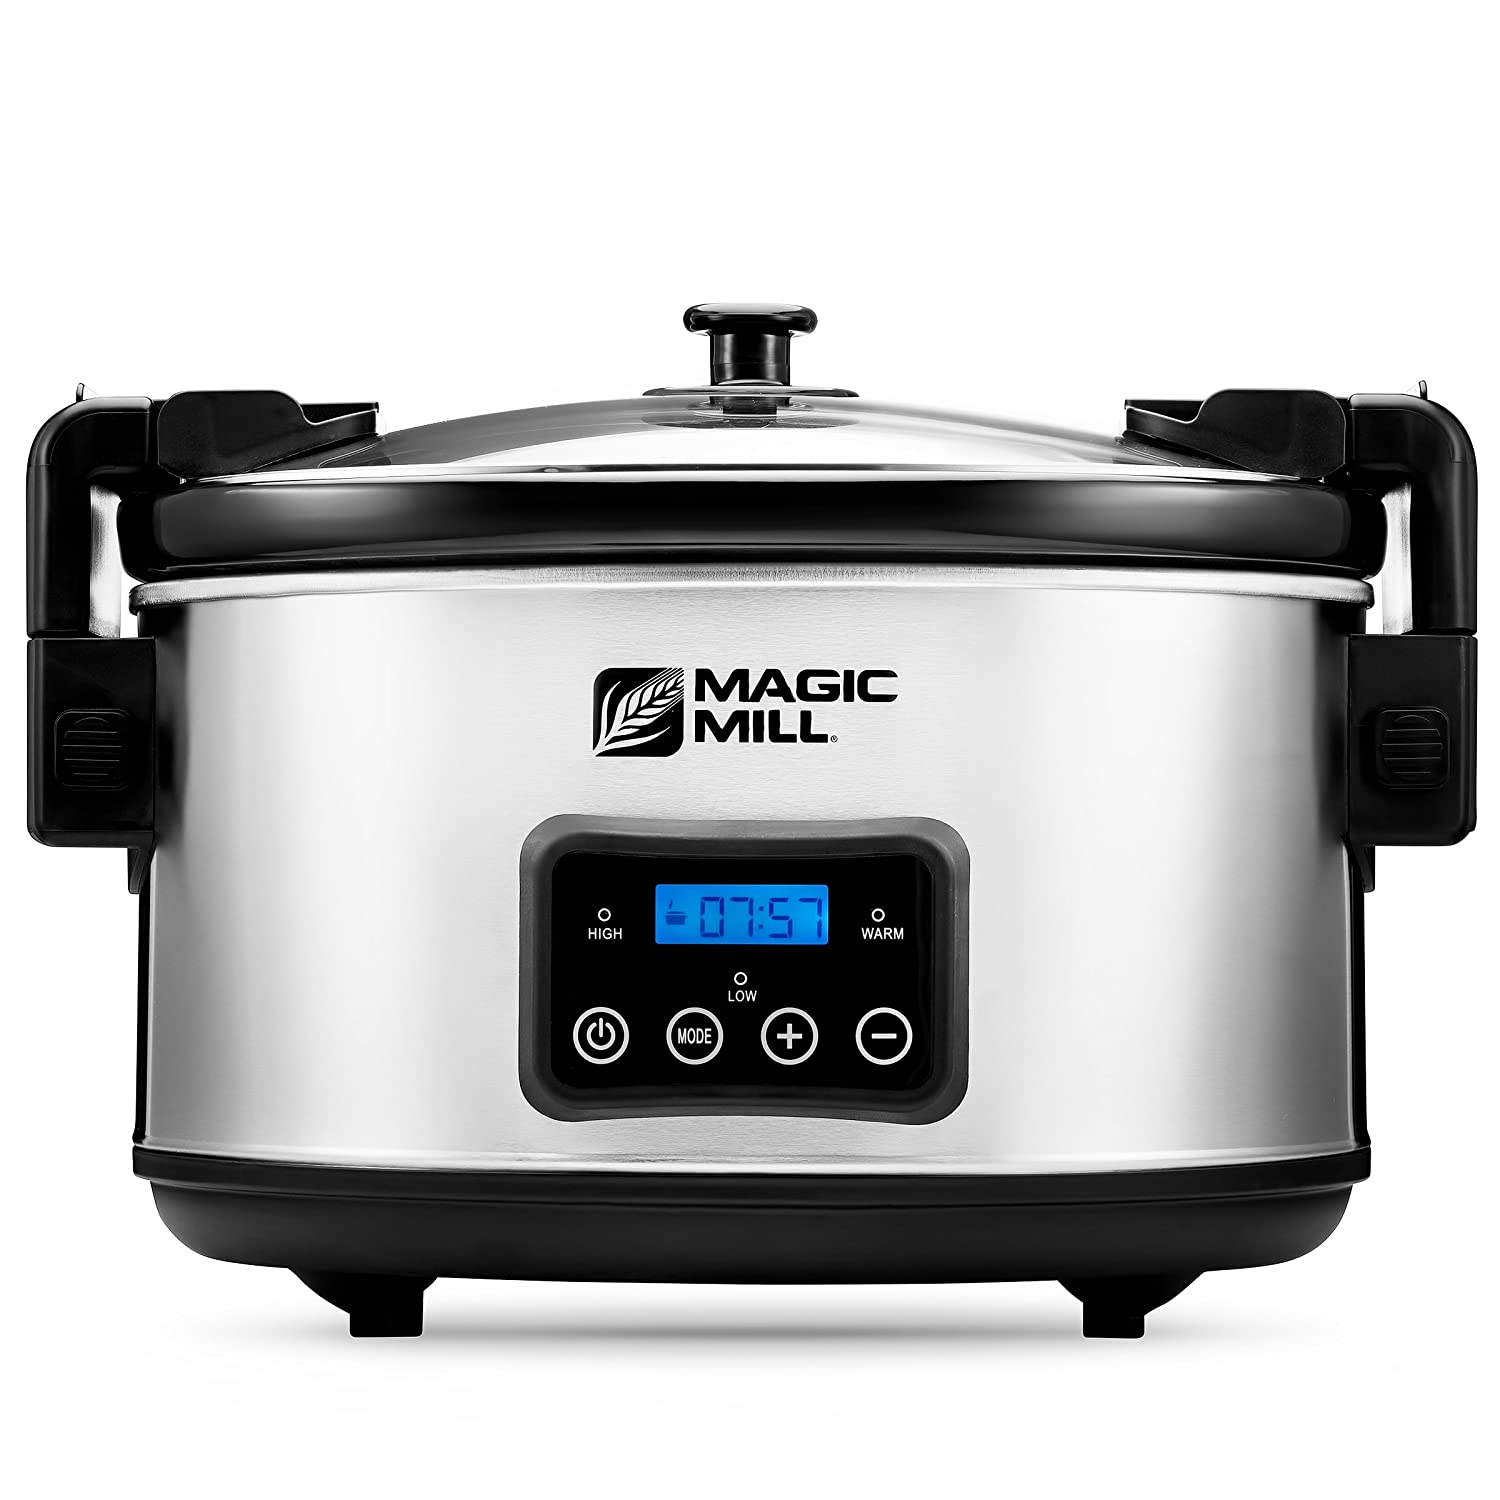 Magic Mill 8.5 Quart Slow Cooker Crock Pot, Digital Programmable, 20 Hour Timer, 3 Cooking Settings, Locking Lid for Easy Transport, Dishwasher Safe